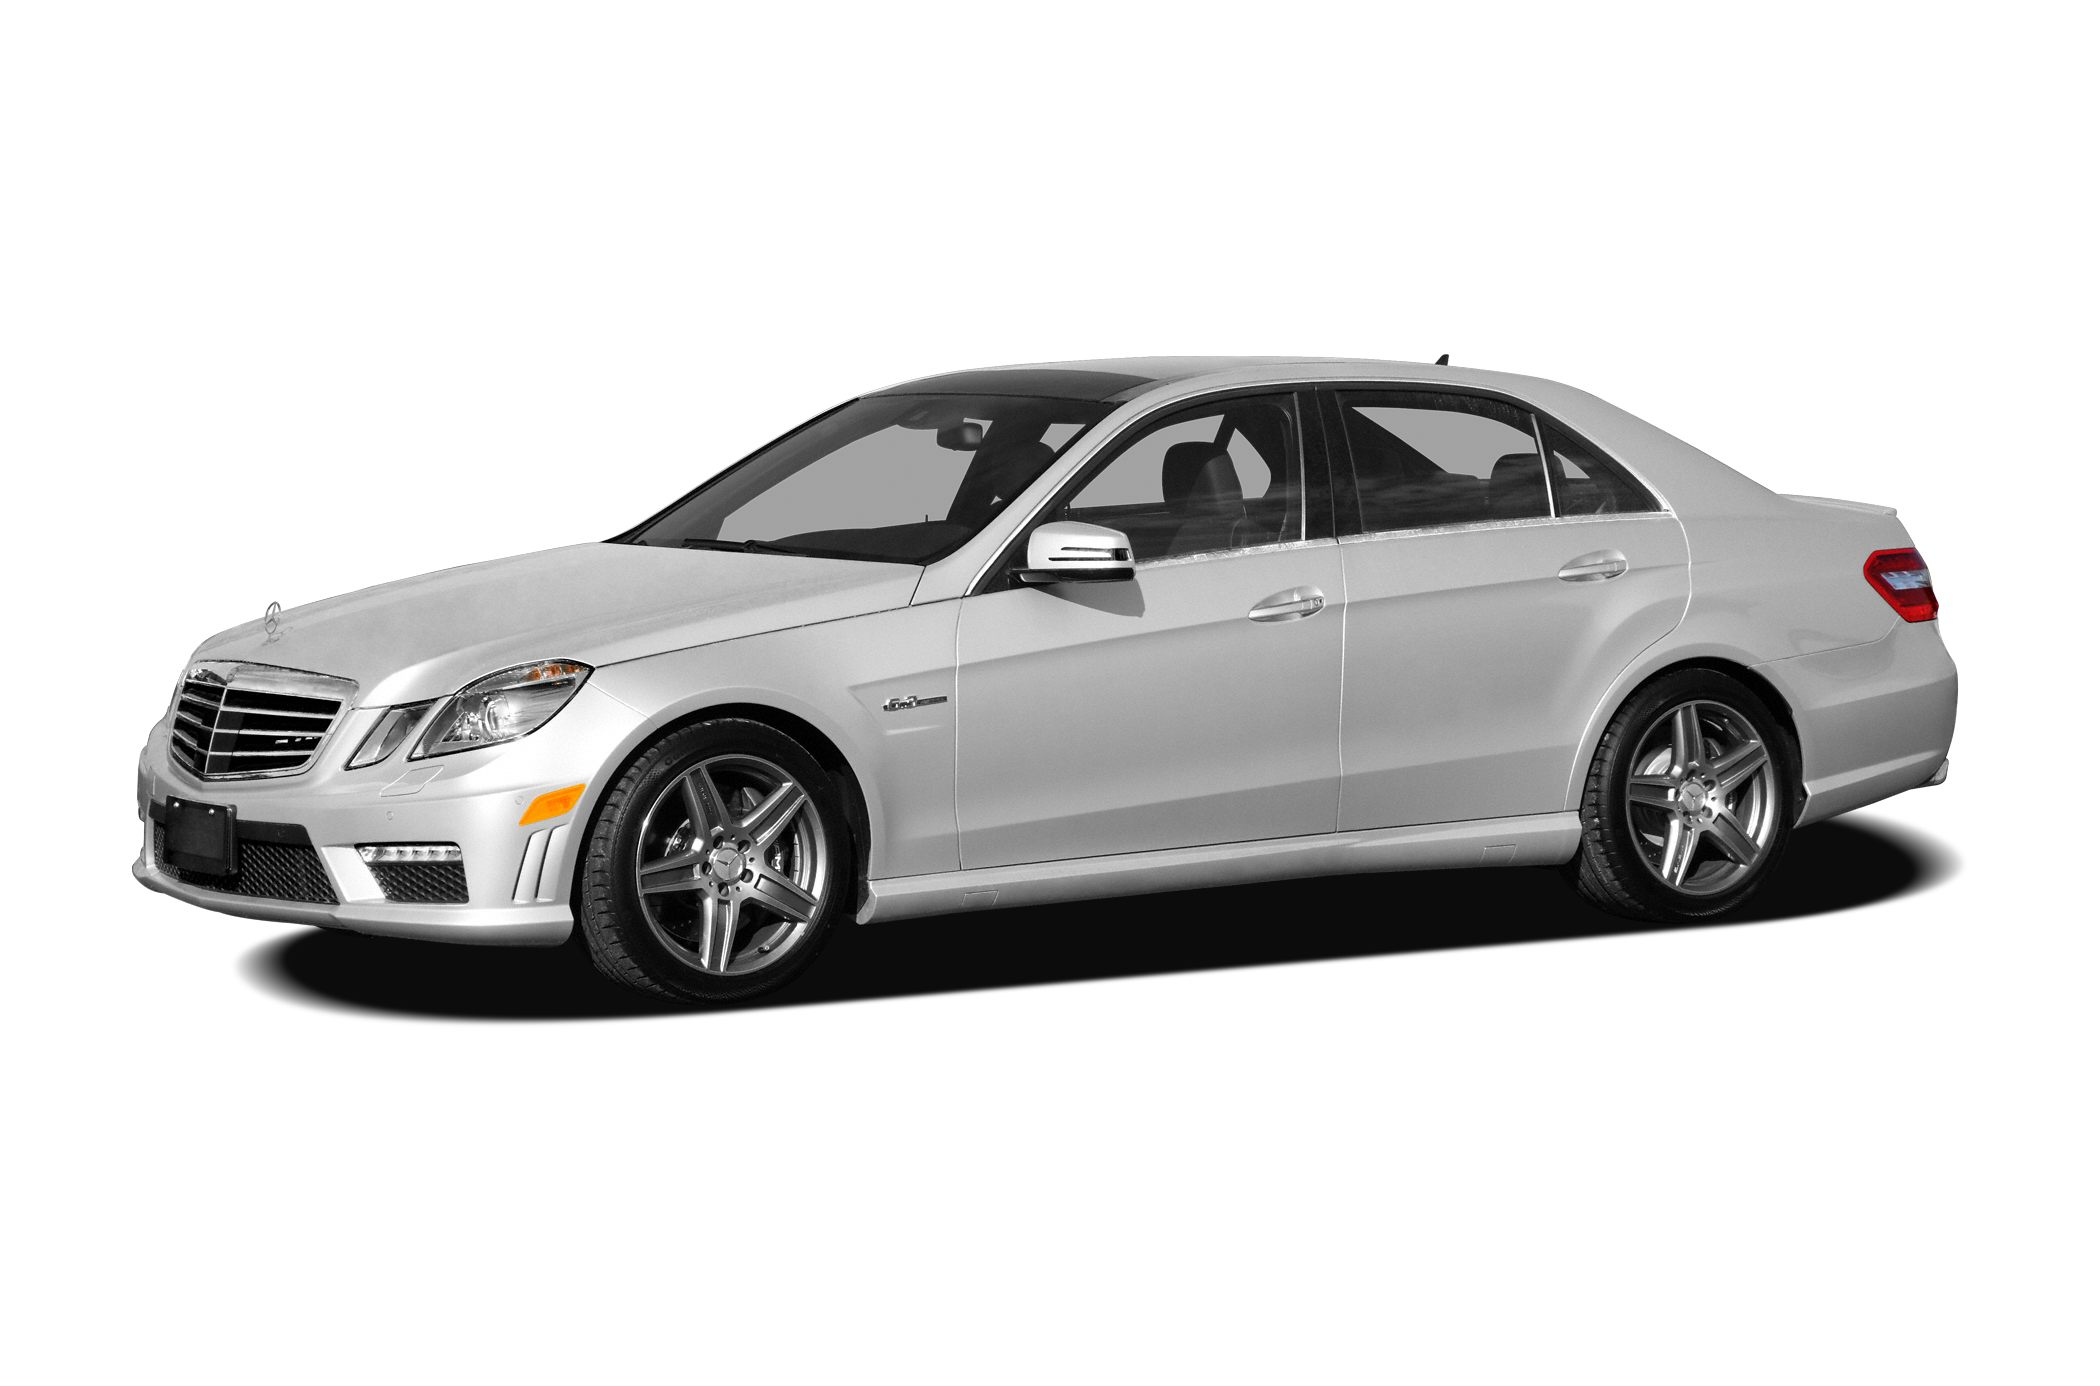 2011 Mercedes-Benz E-Class E63 AMG Sedan for sale in Joplin for $59,997 with 11,449 miles